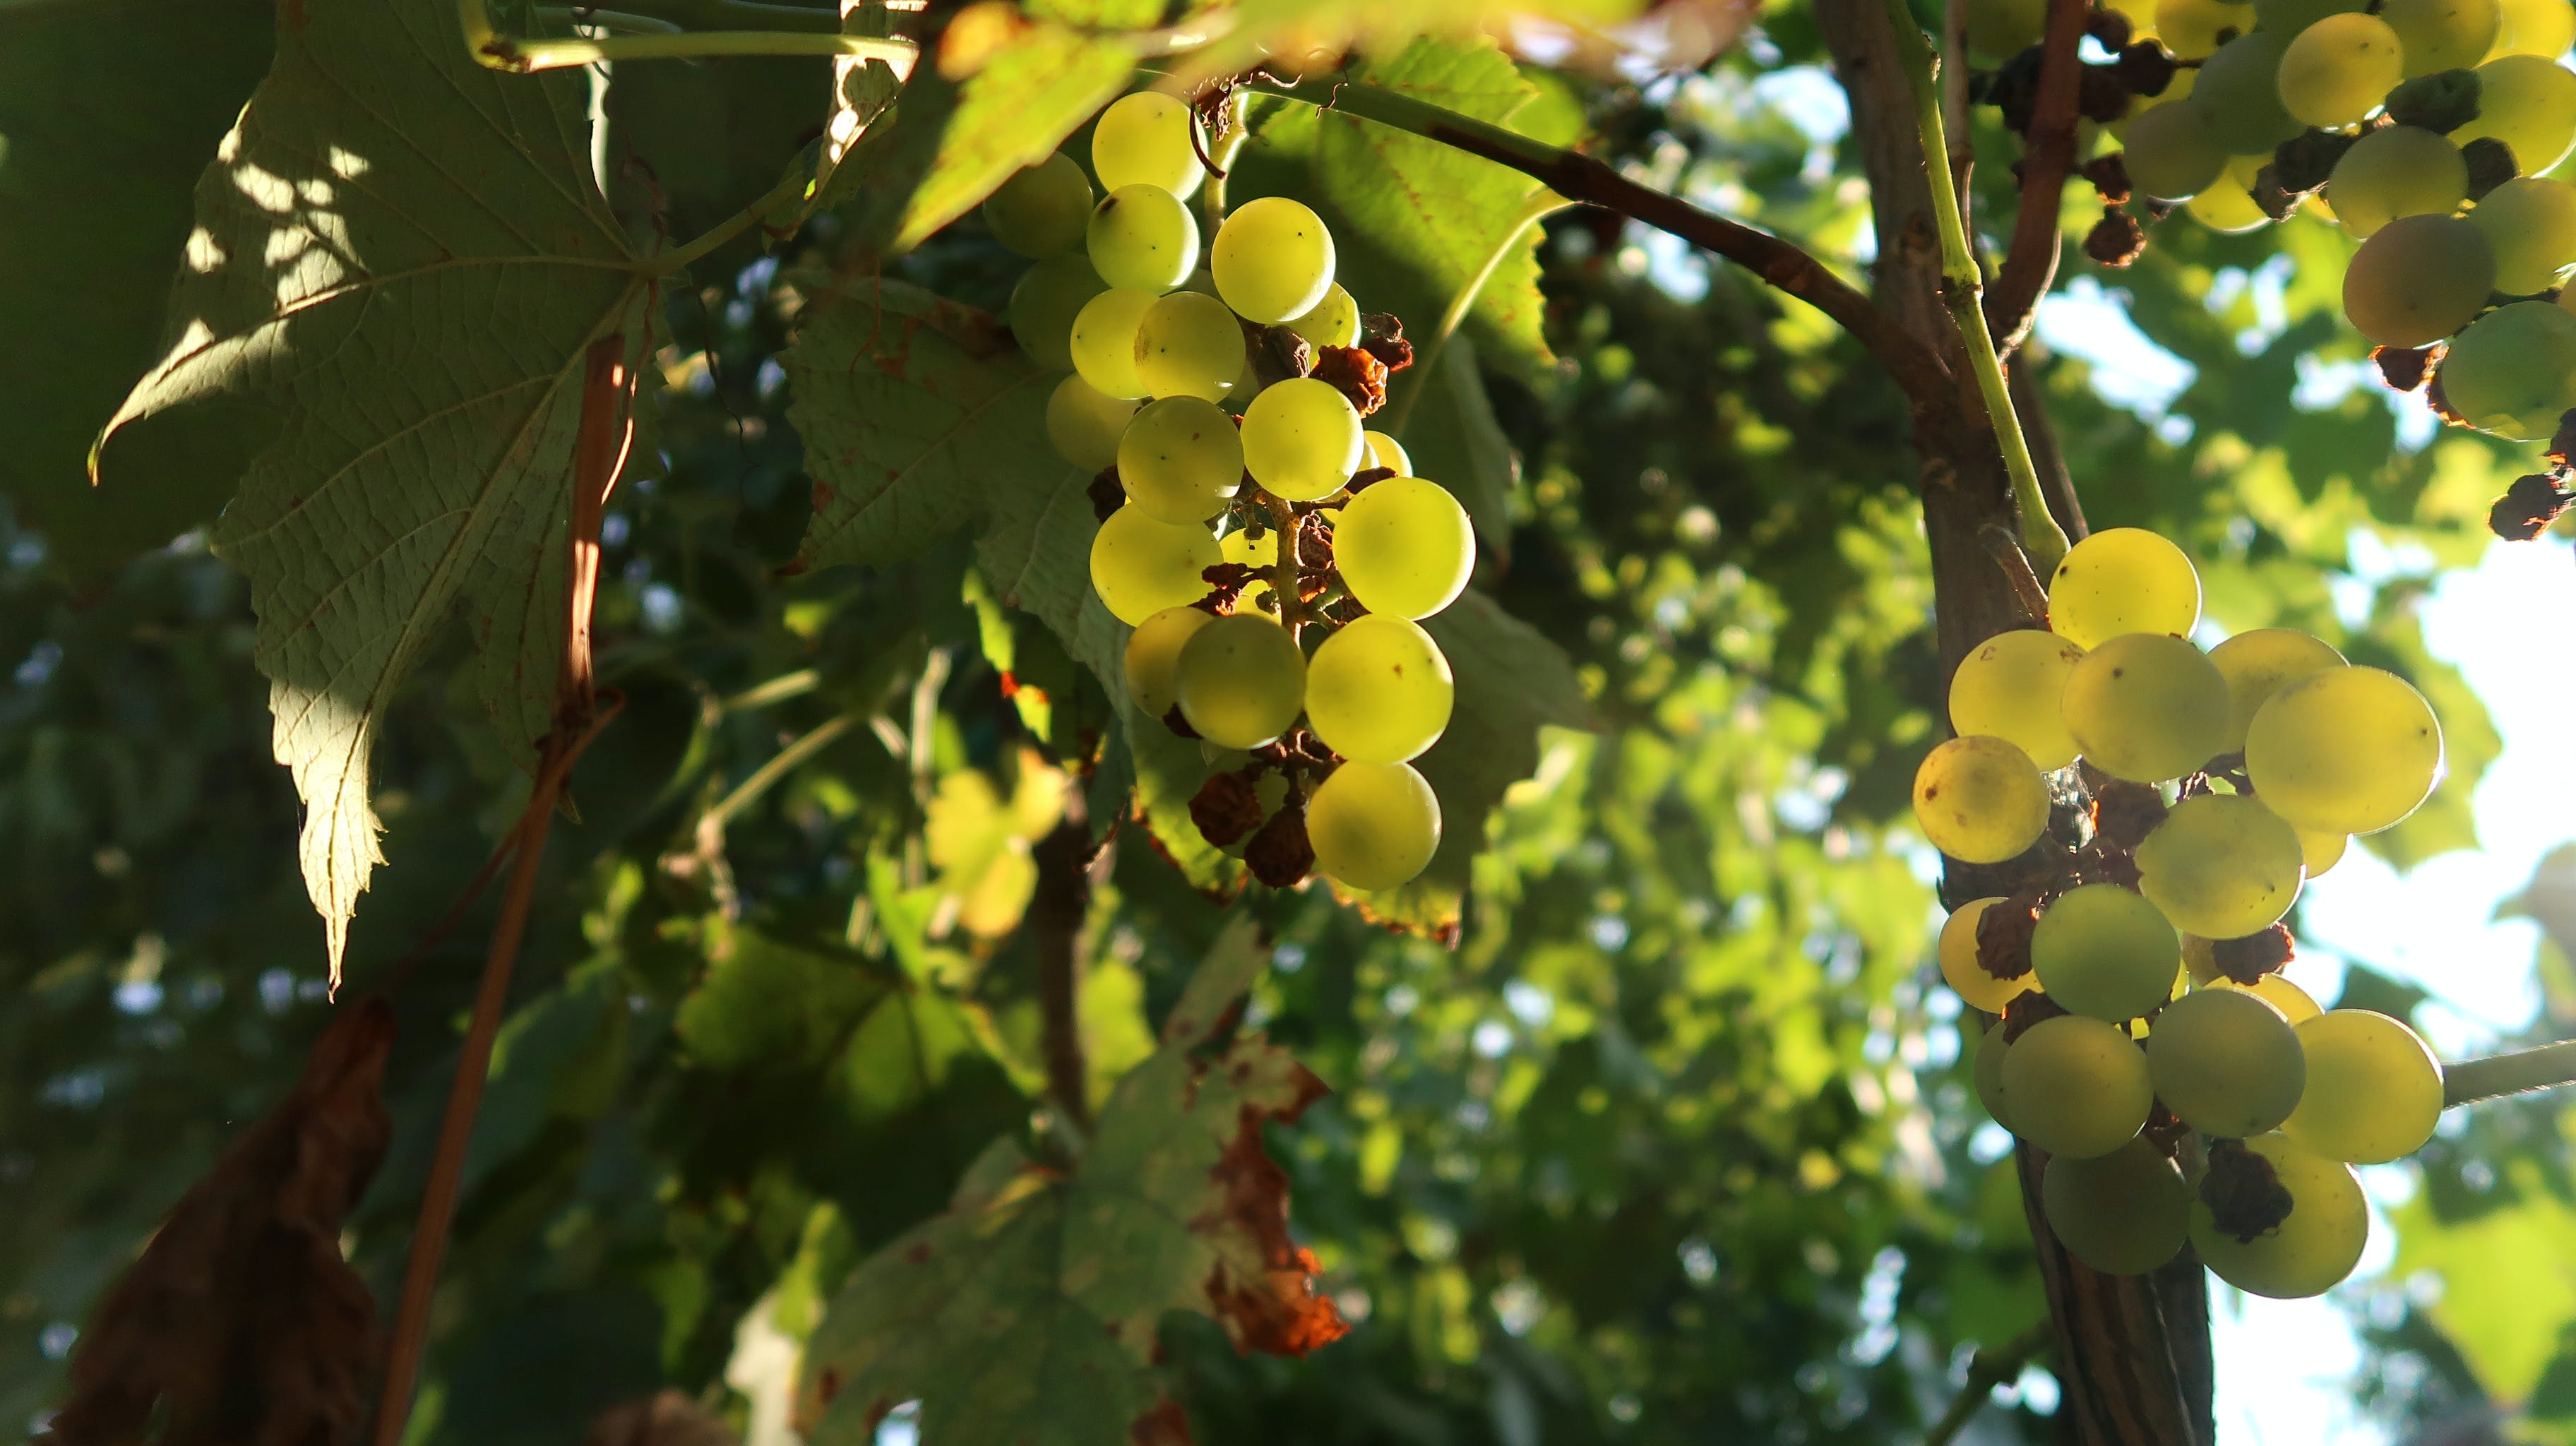 Free stock photo of grapes, nature, wine grapes